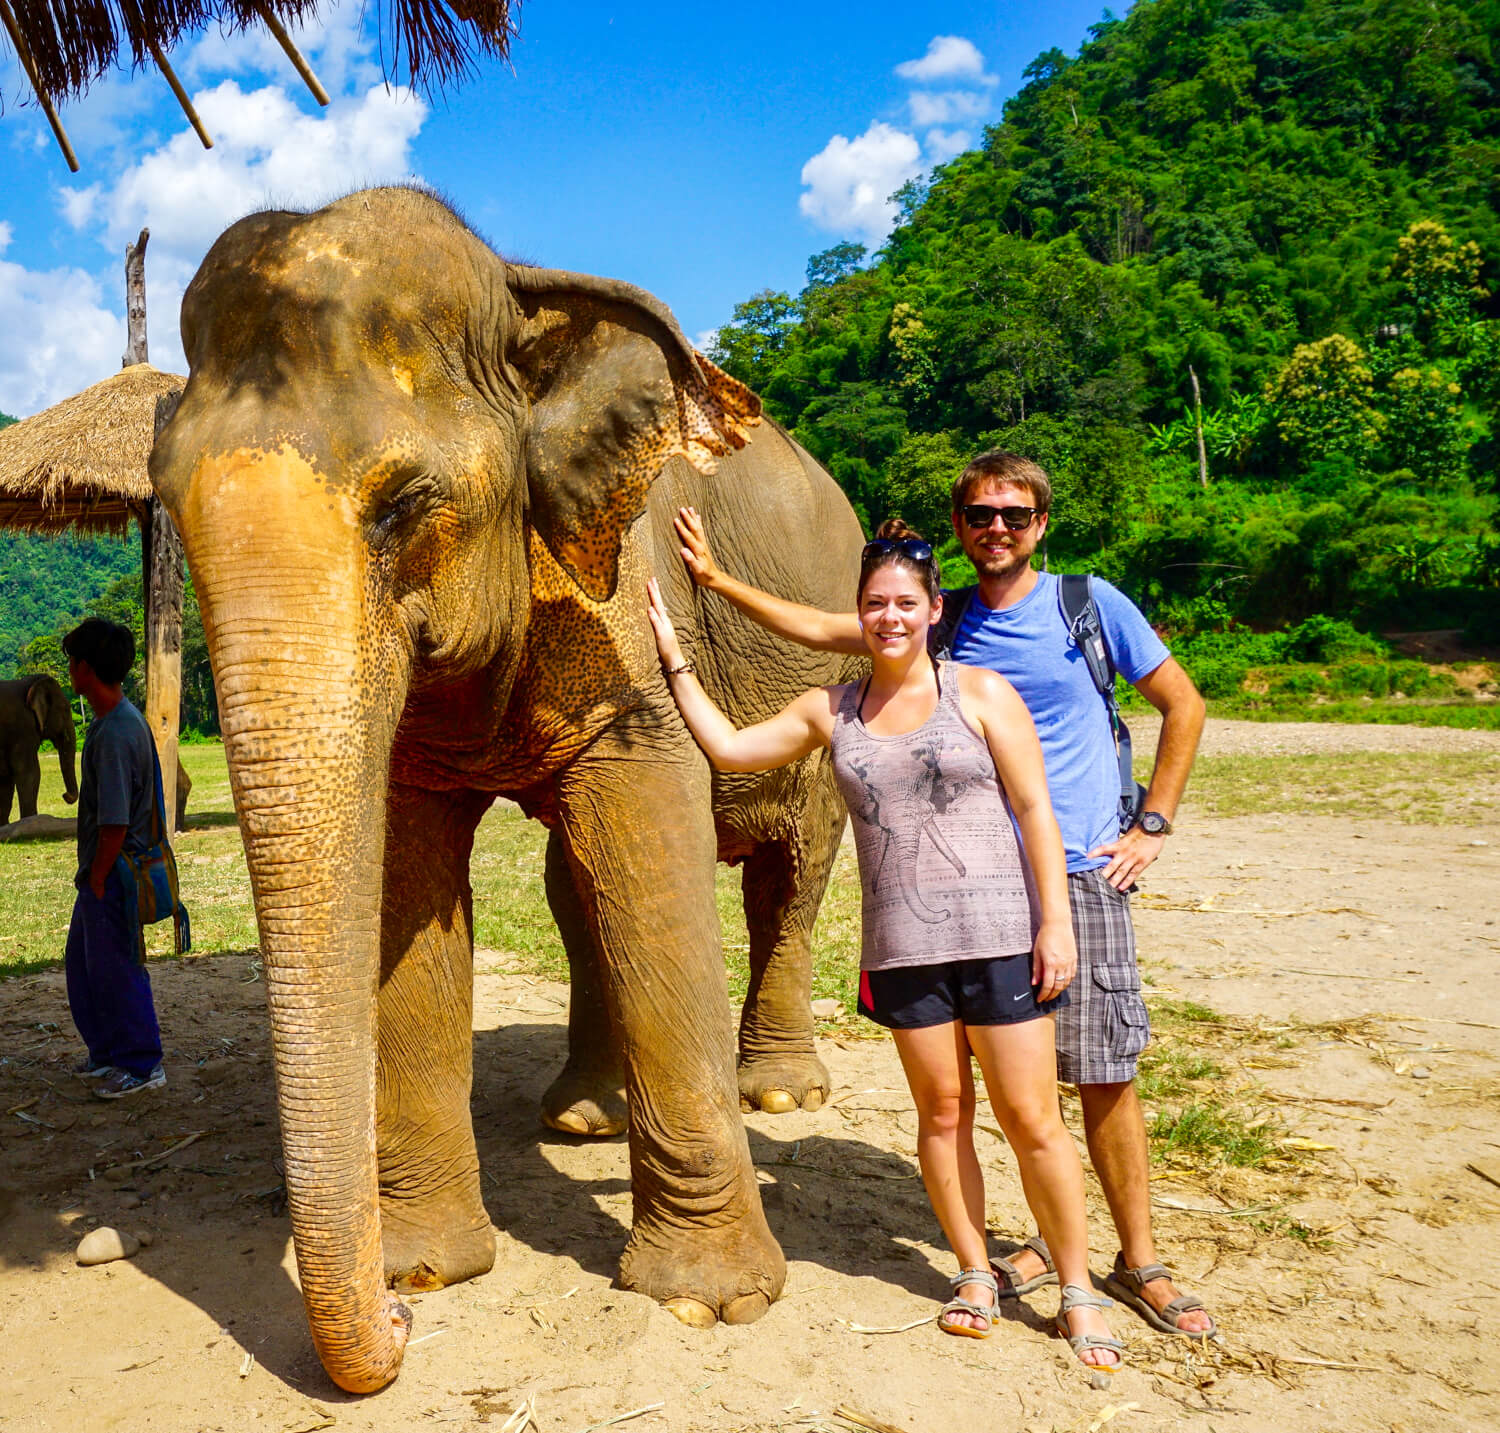 Us taking a picture with an elephant